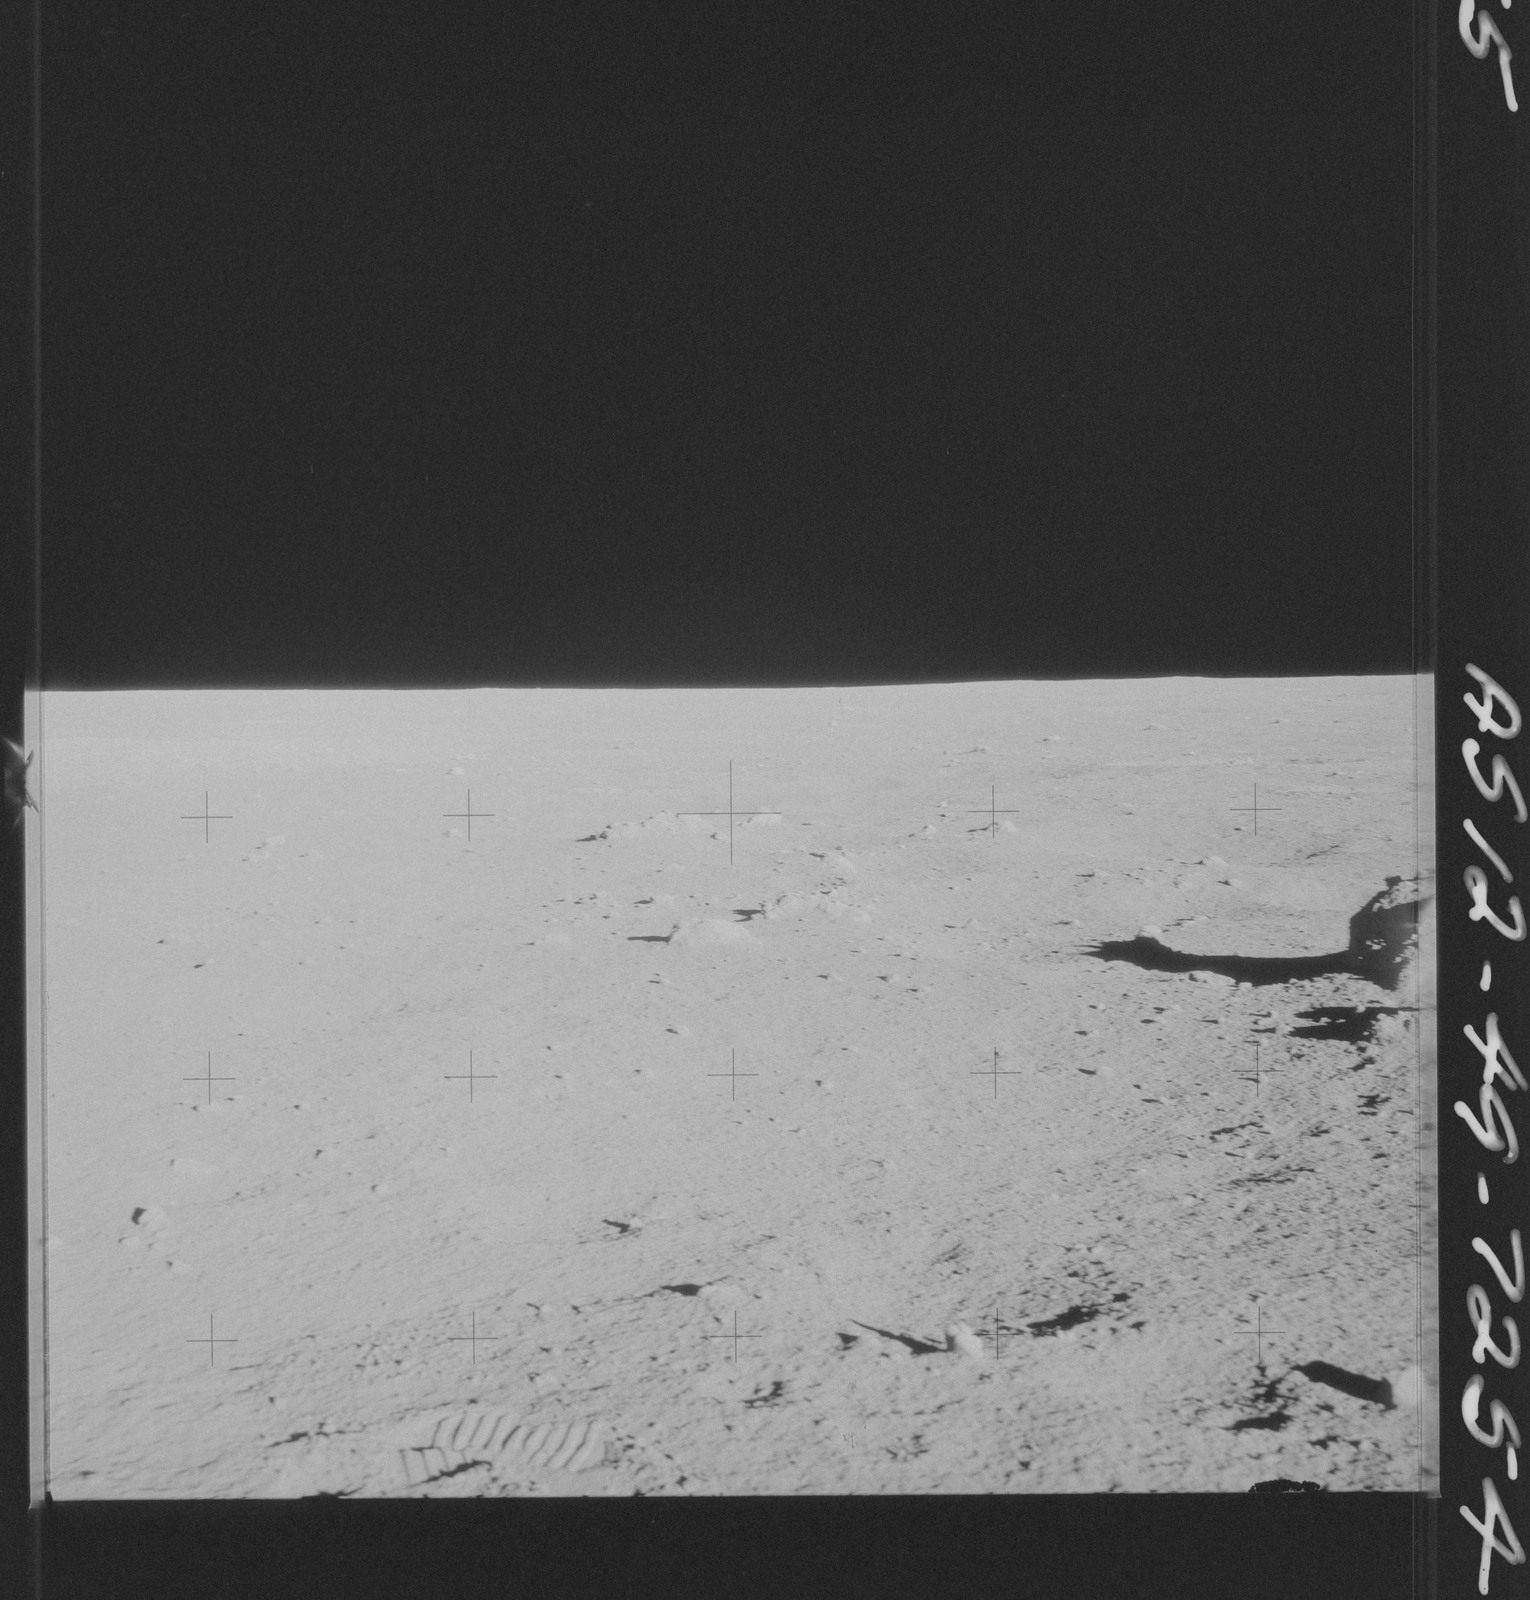 AS12-49-7254 - Apollo 12 - Apollo 12 Mission image  - View of the Lunar terrain